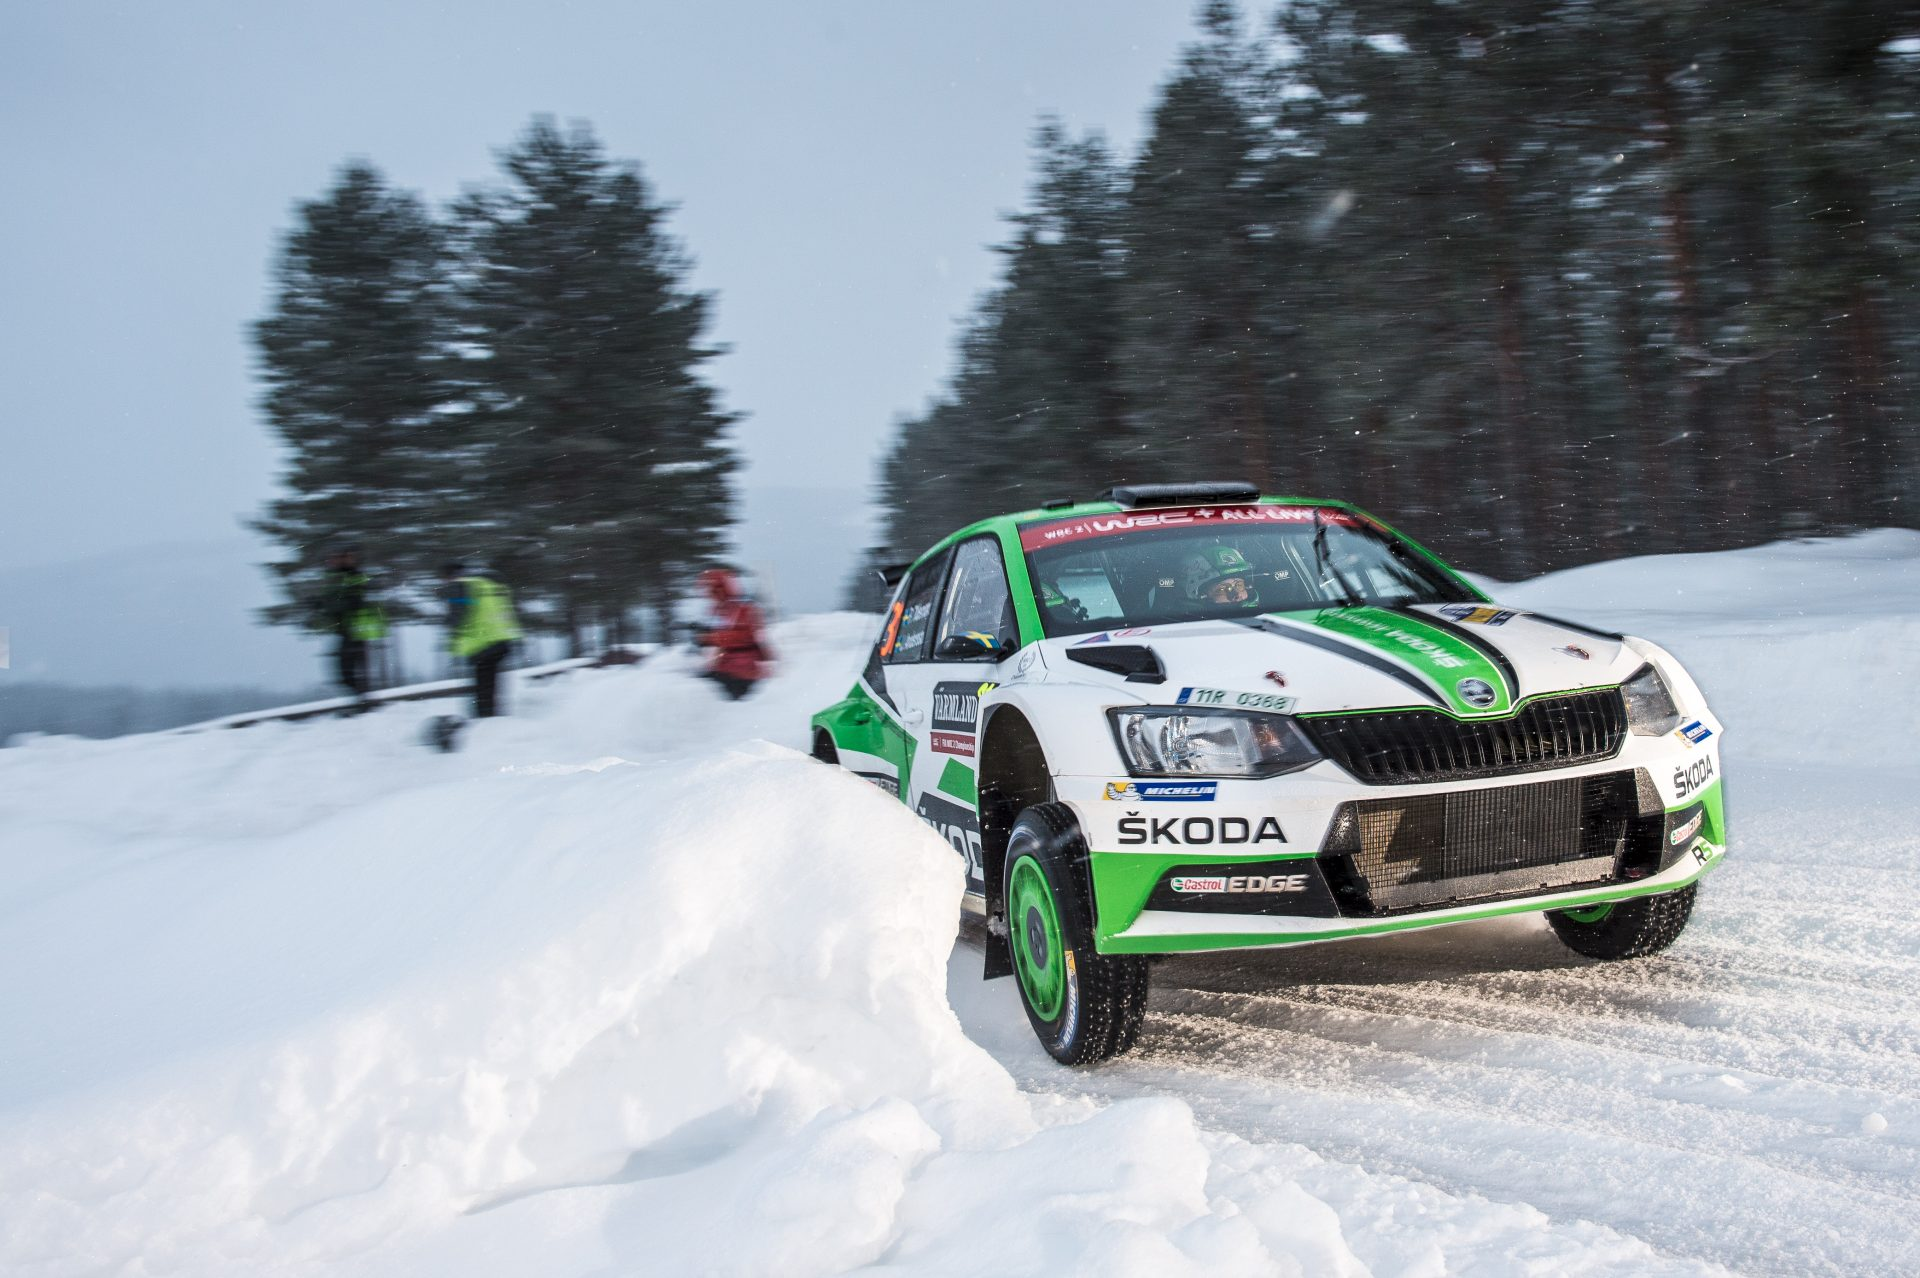 Speed on Ice: FABIA R5s to Enter the Zell am See GP Ice Race